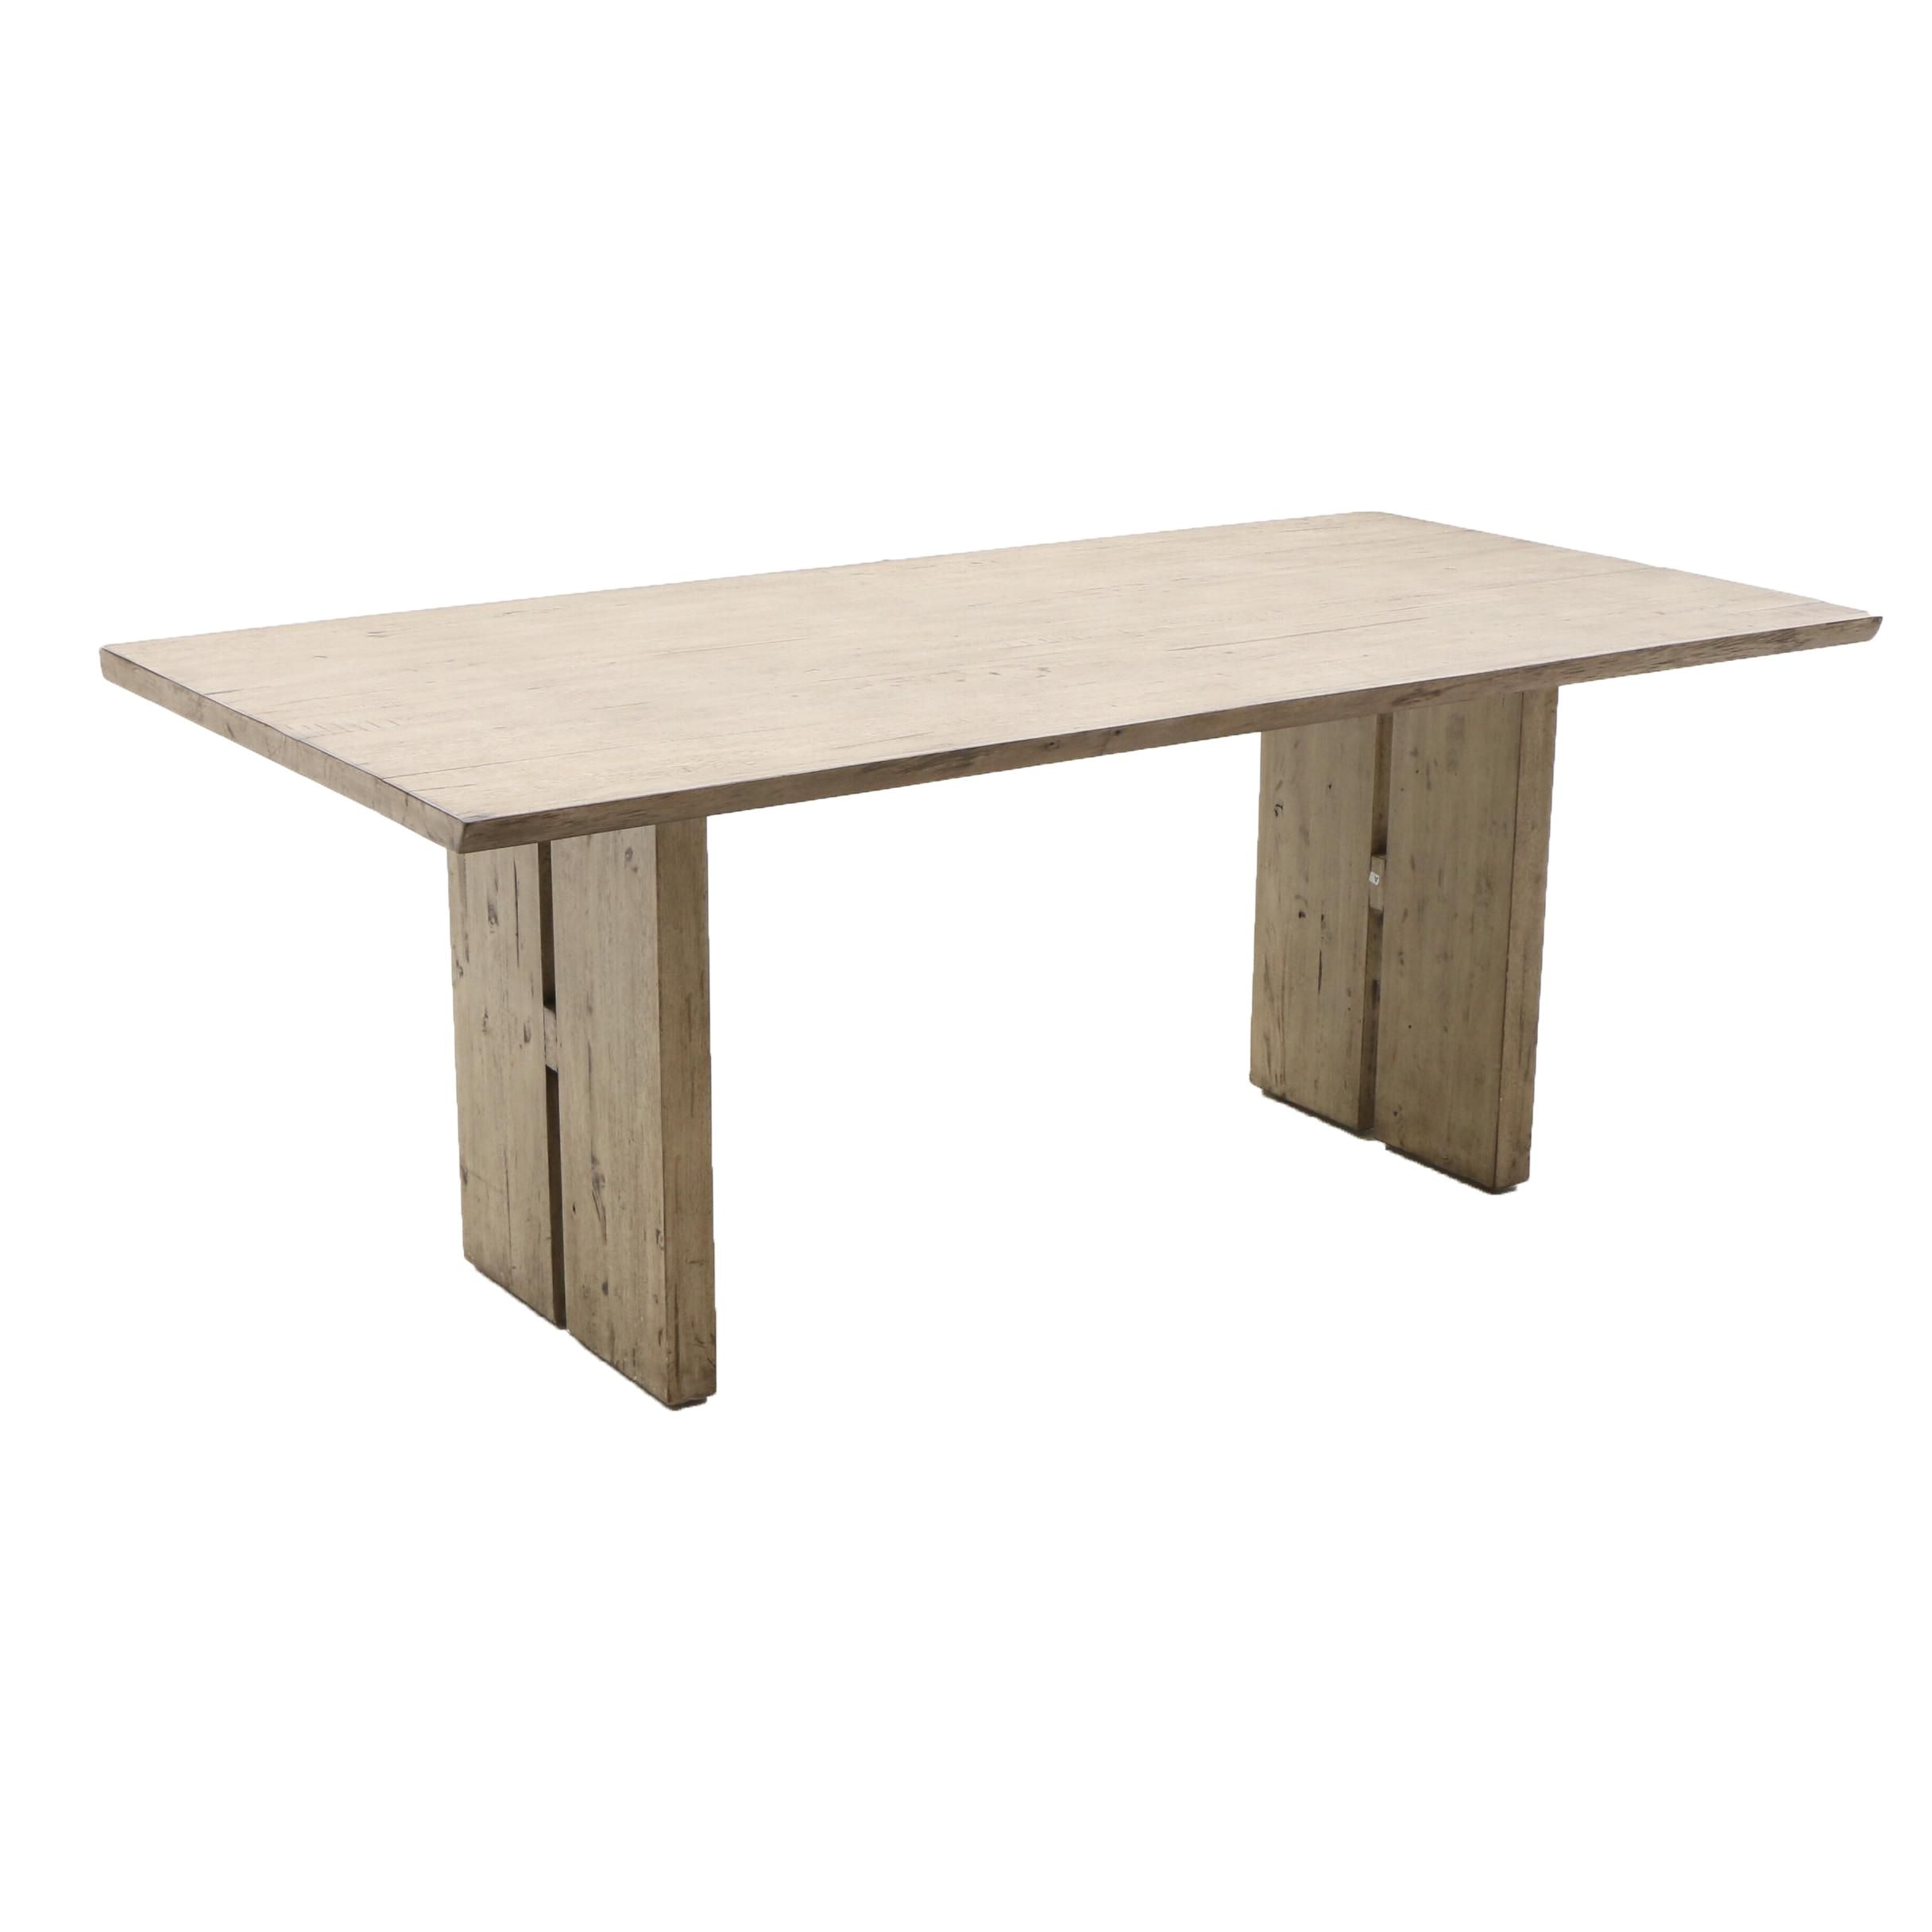 Reclaimed Wood Dining Table By Napa Furniture Designs ...